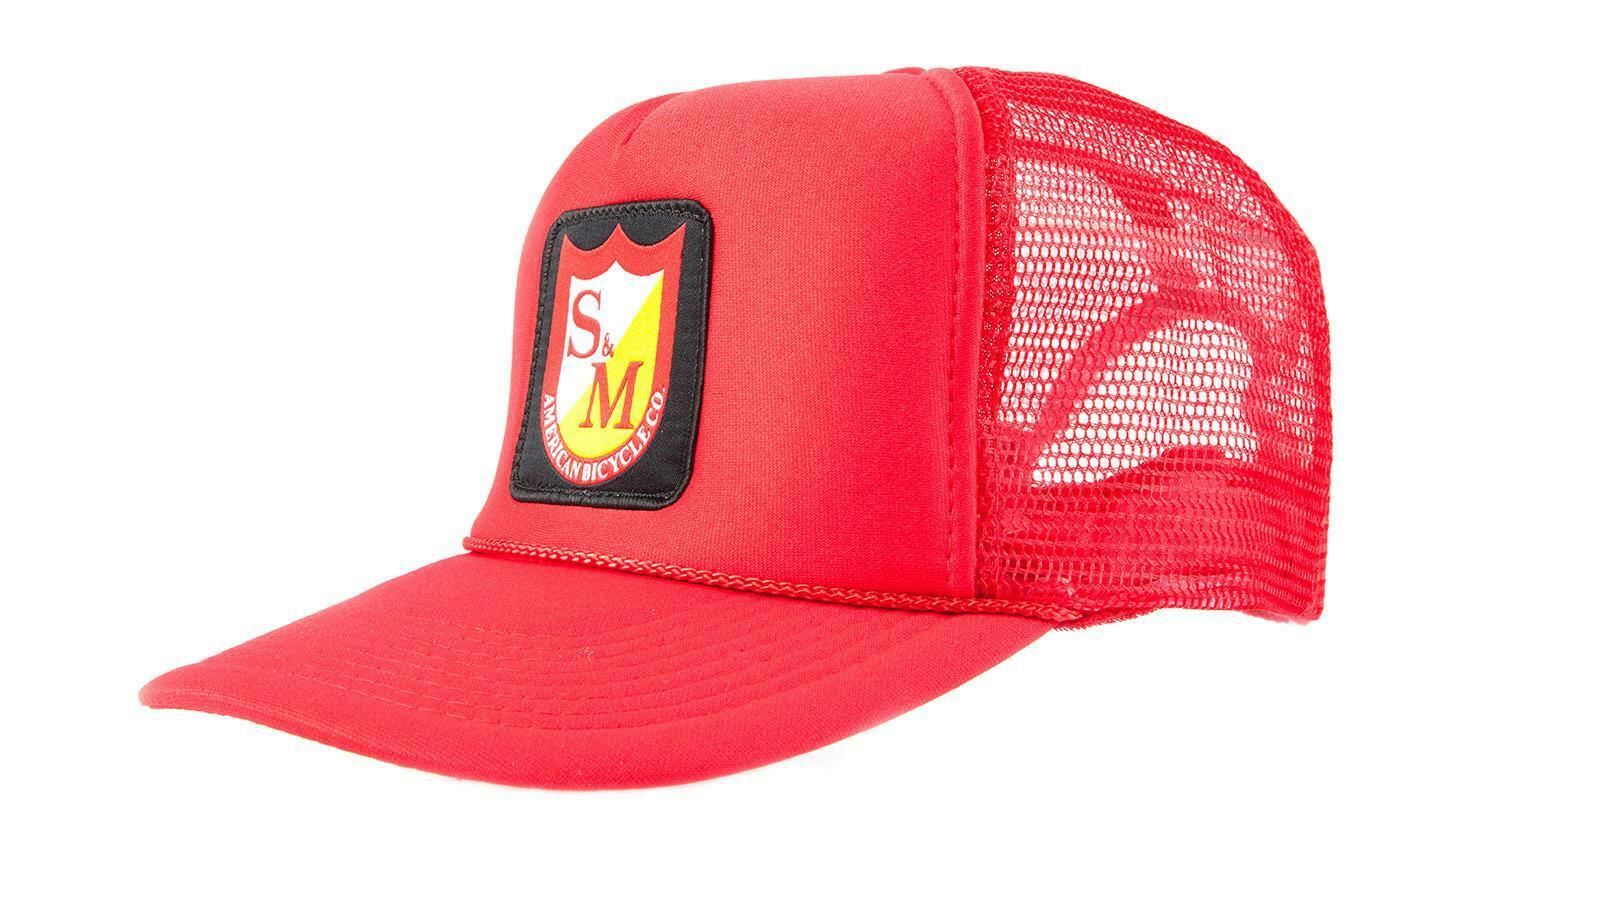 S/&M Bikes Patch Mesh Trucker Cap Black Red or Yellow One Size